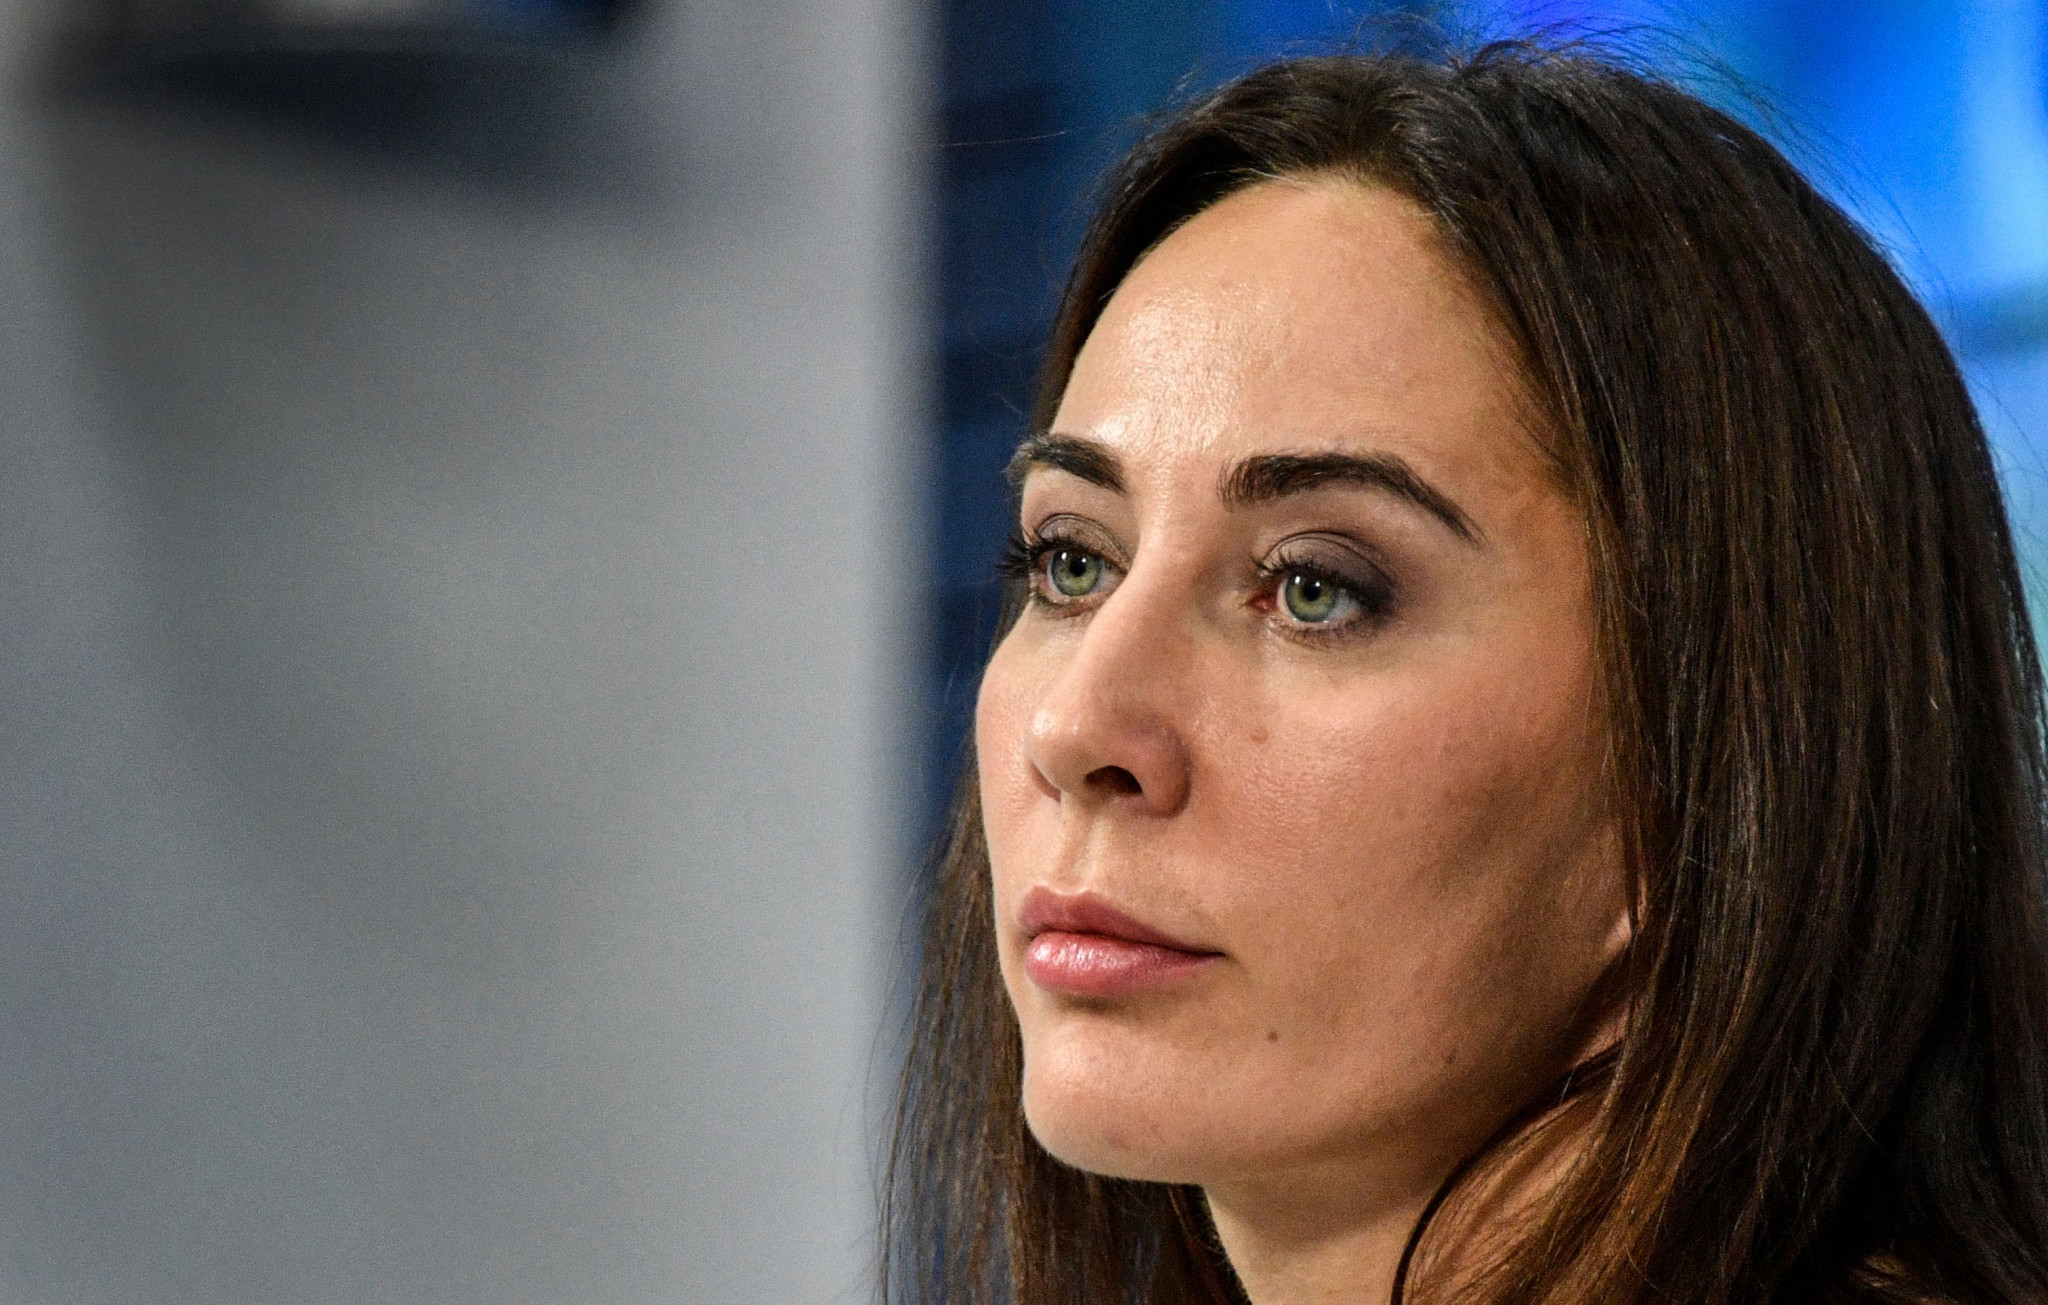 RUSADA deputy director general Margarita Pakhnotskaya revealed there were 13 doping cases involving Russian athletes recorded in April, while a Russian Premier League footballer has reportedly tested positive ©Getty Images